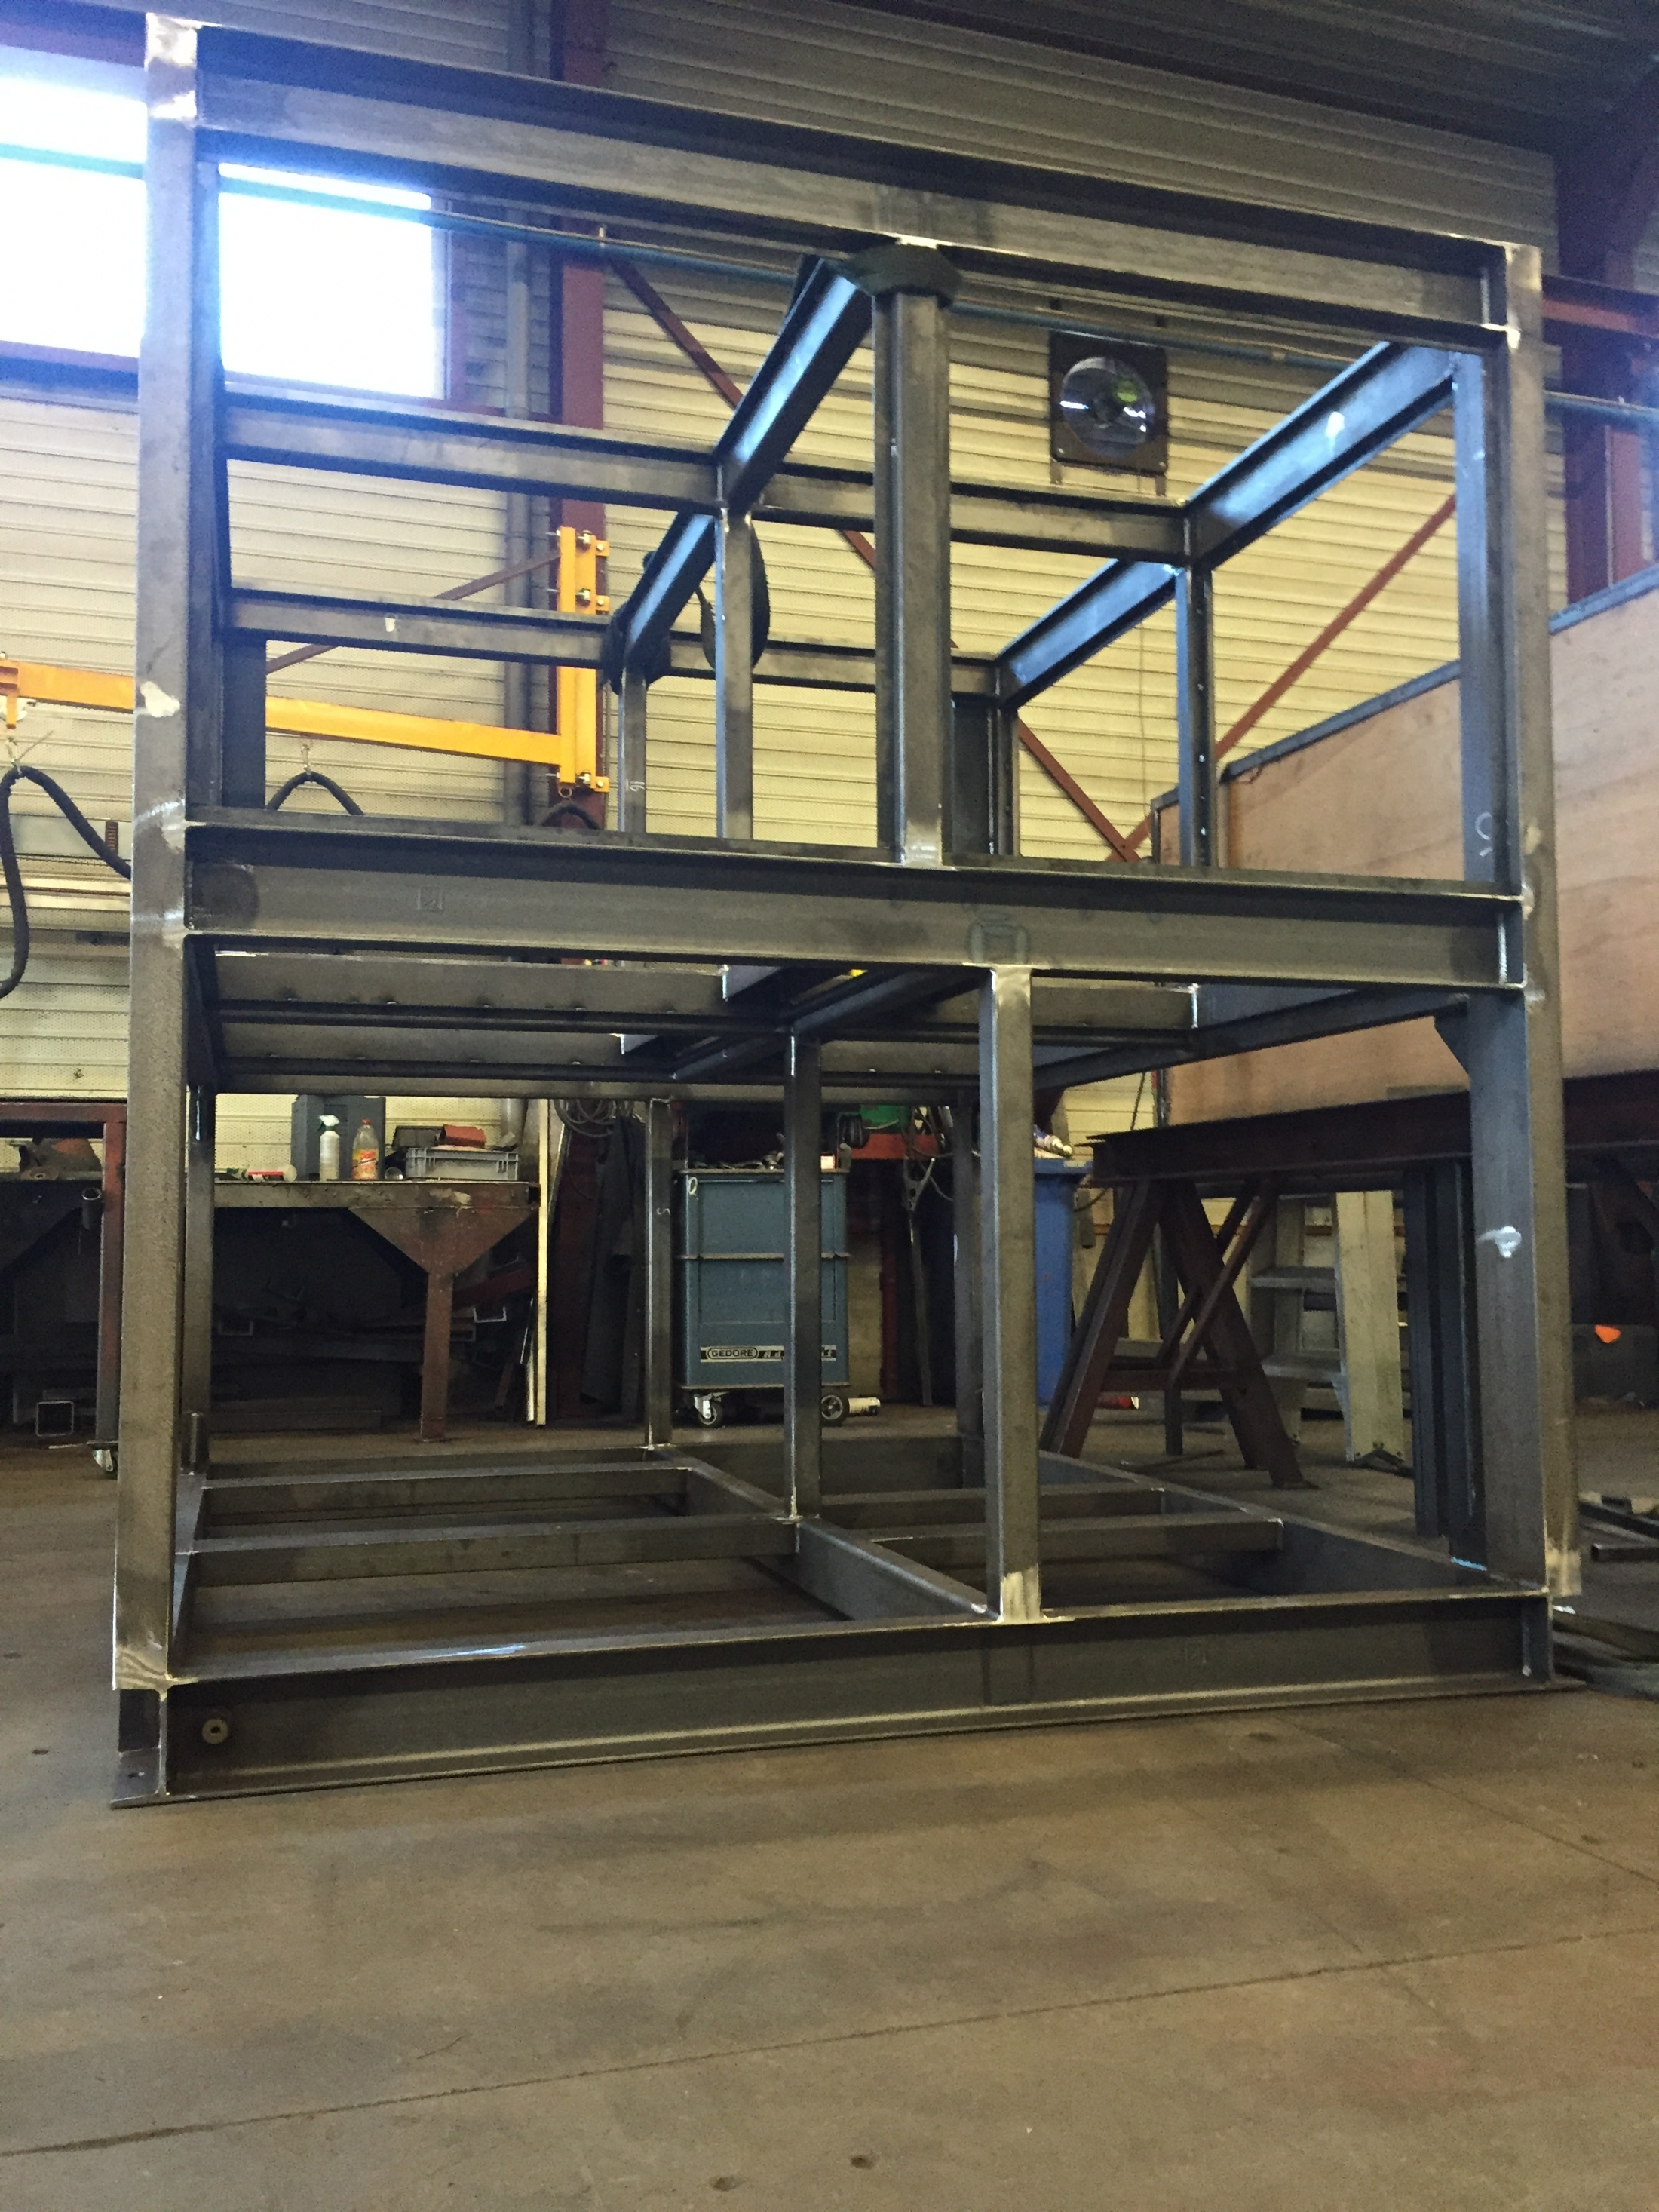 Frames machinebouw